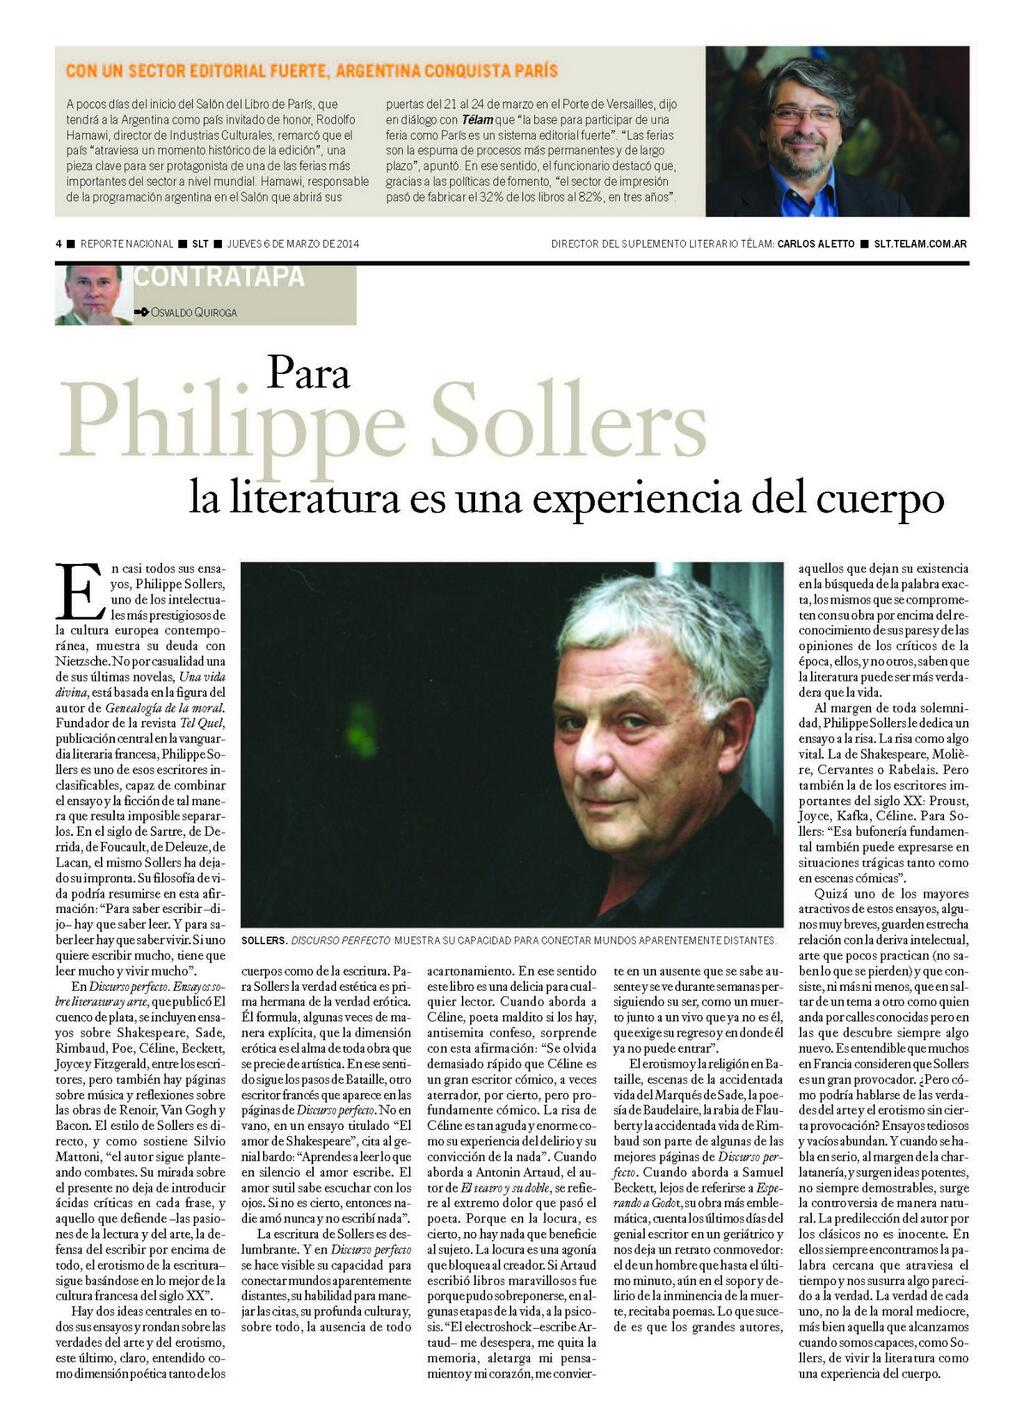 Philippe Sollers discurso perfecto